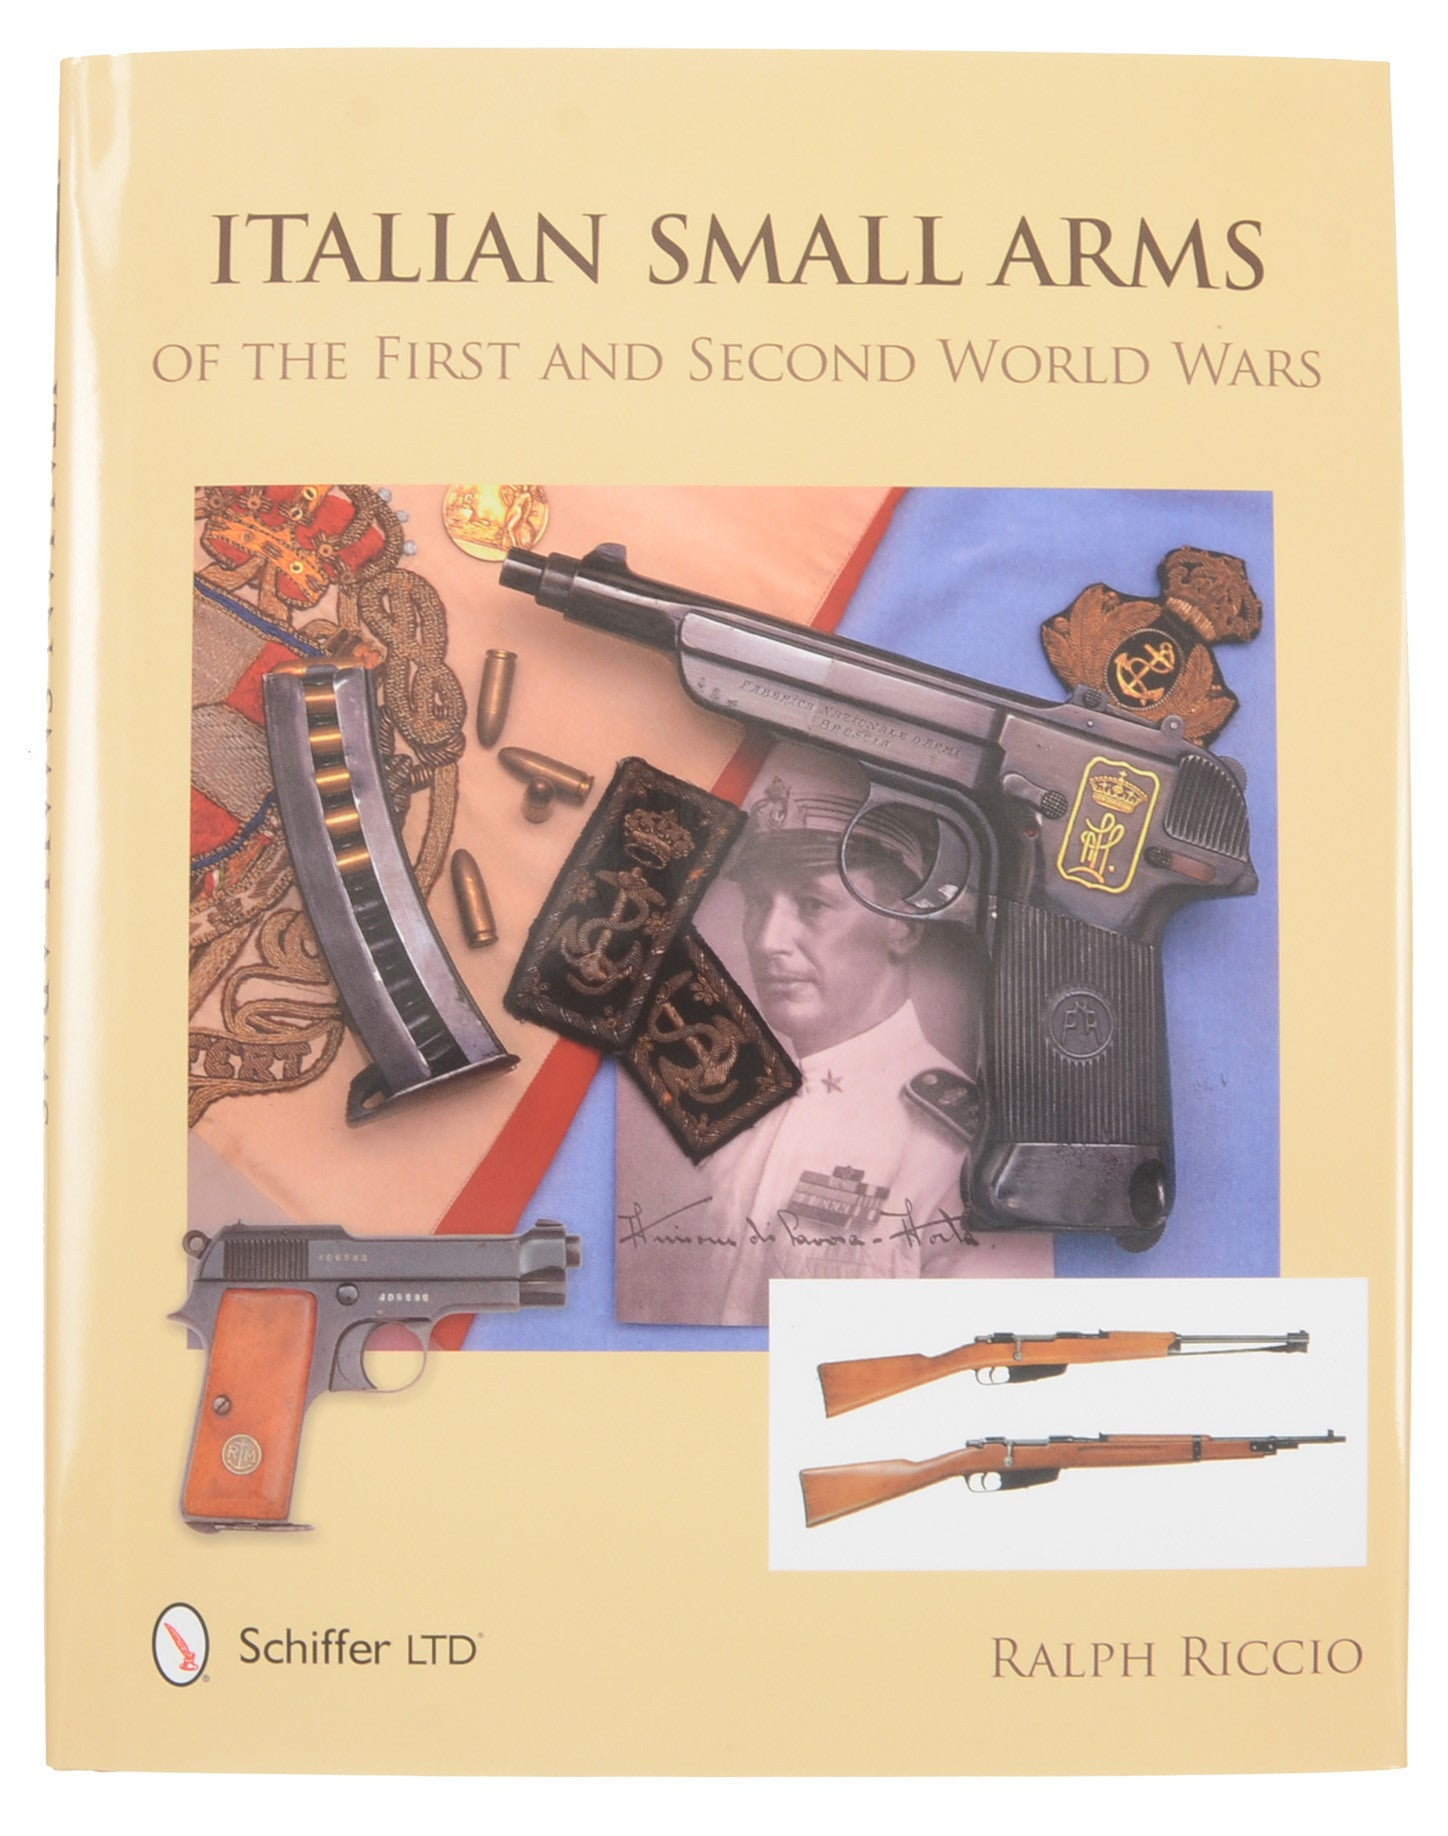 ITALIAN SMALL ARMS